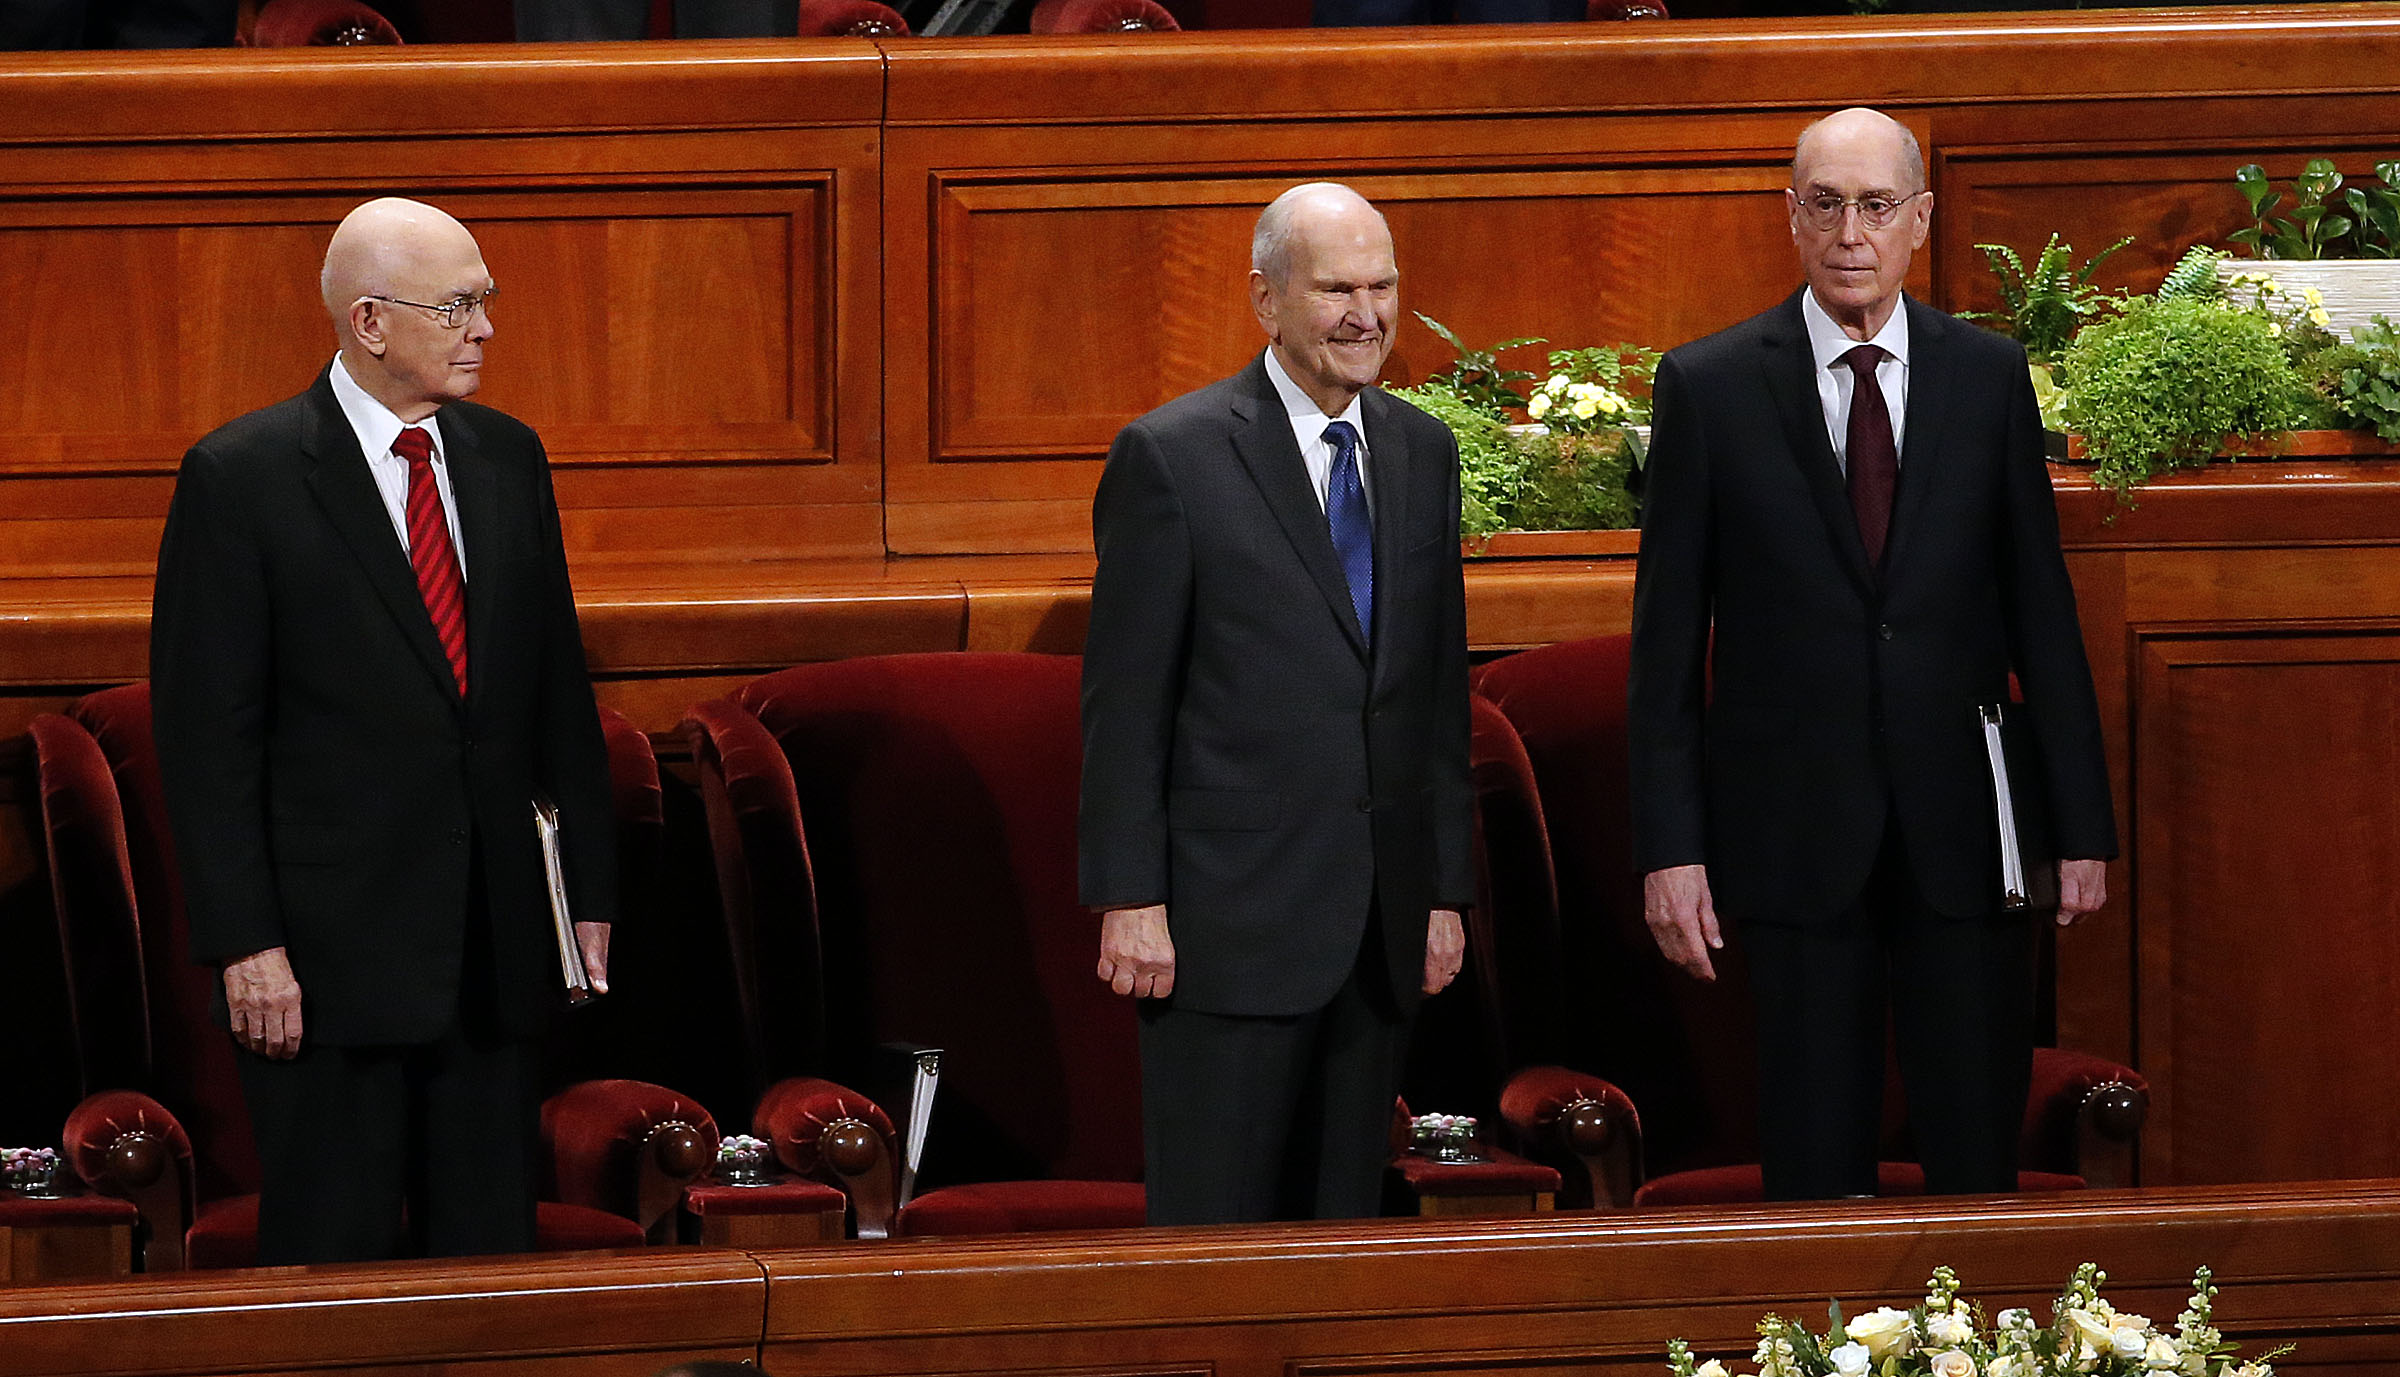 Members of the First Presidency stand before taking their seats for the Church's 188th Annual General Conference in Salt Lake City on Saturday, March 31, 2018.